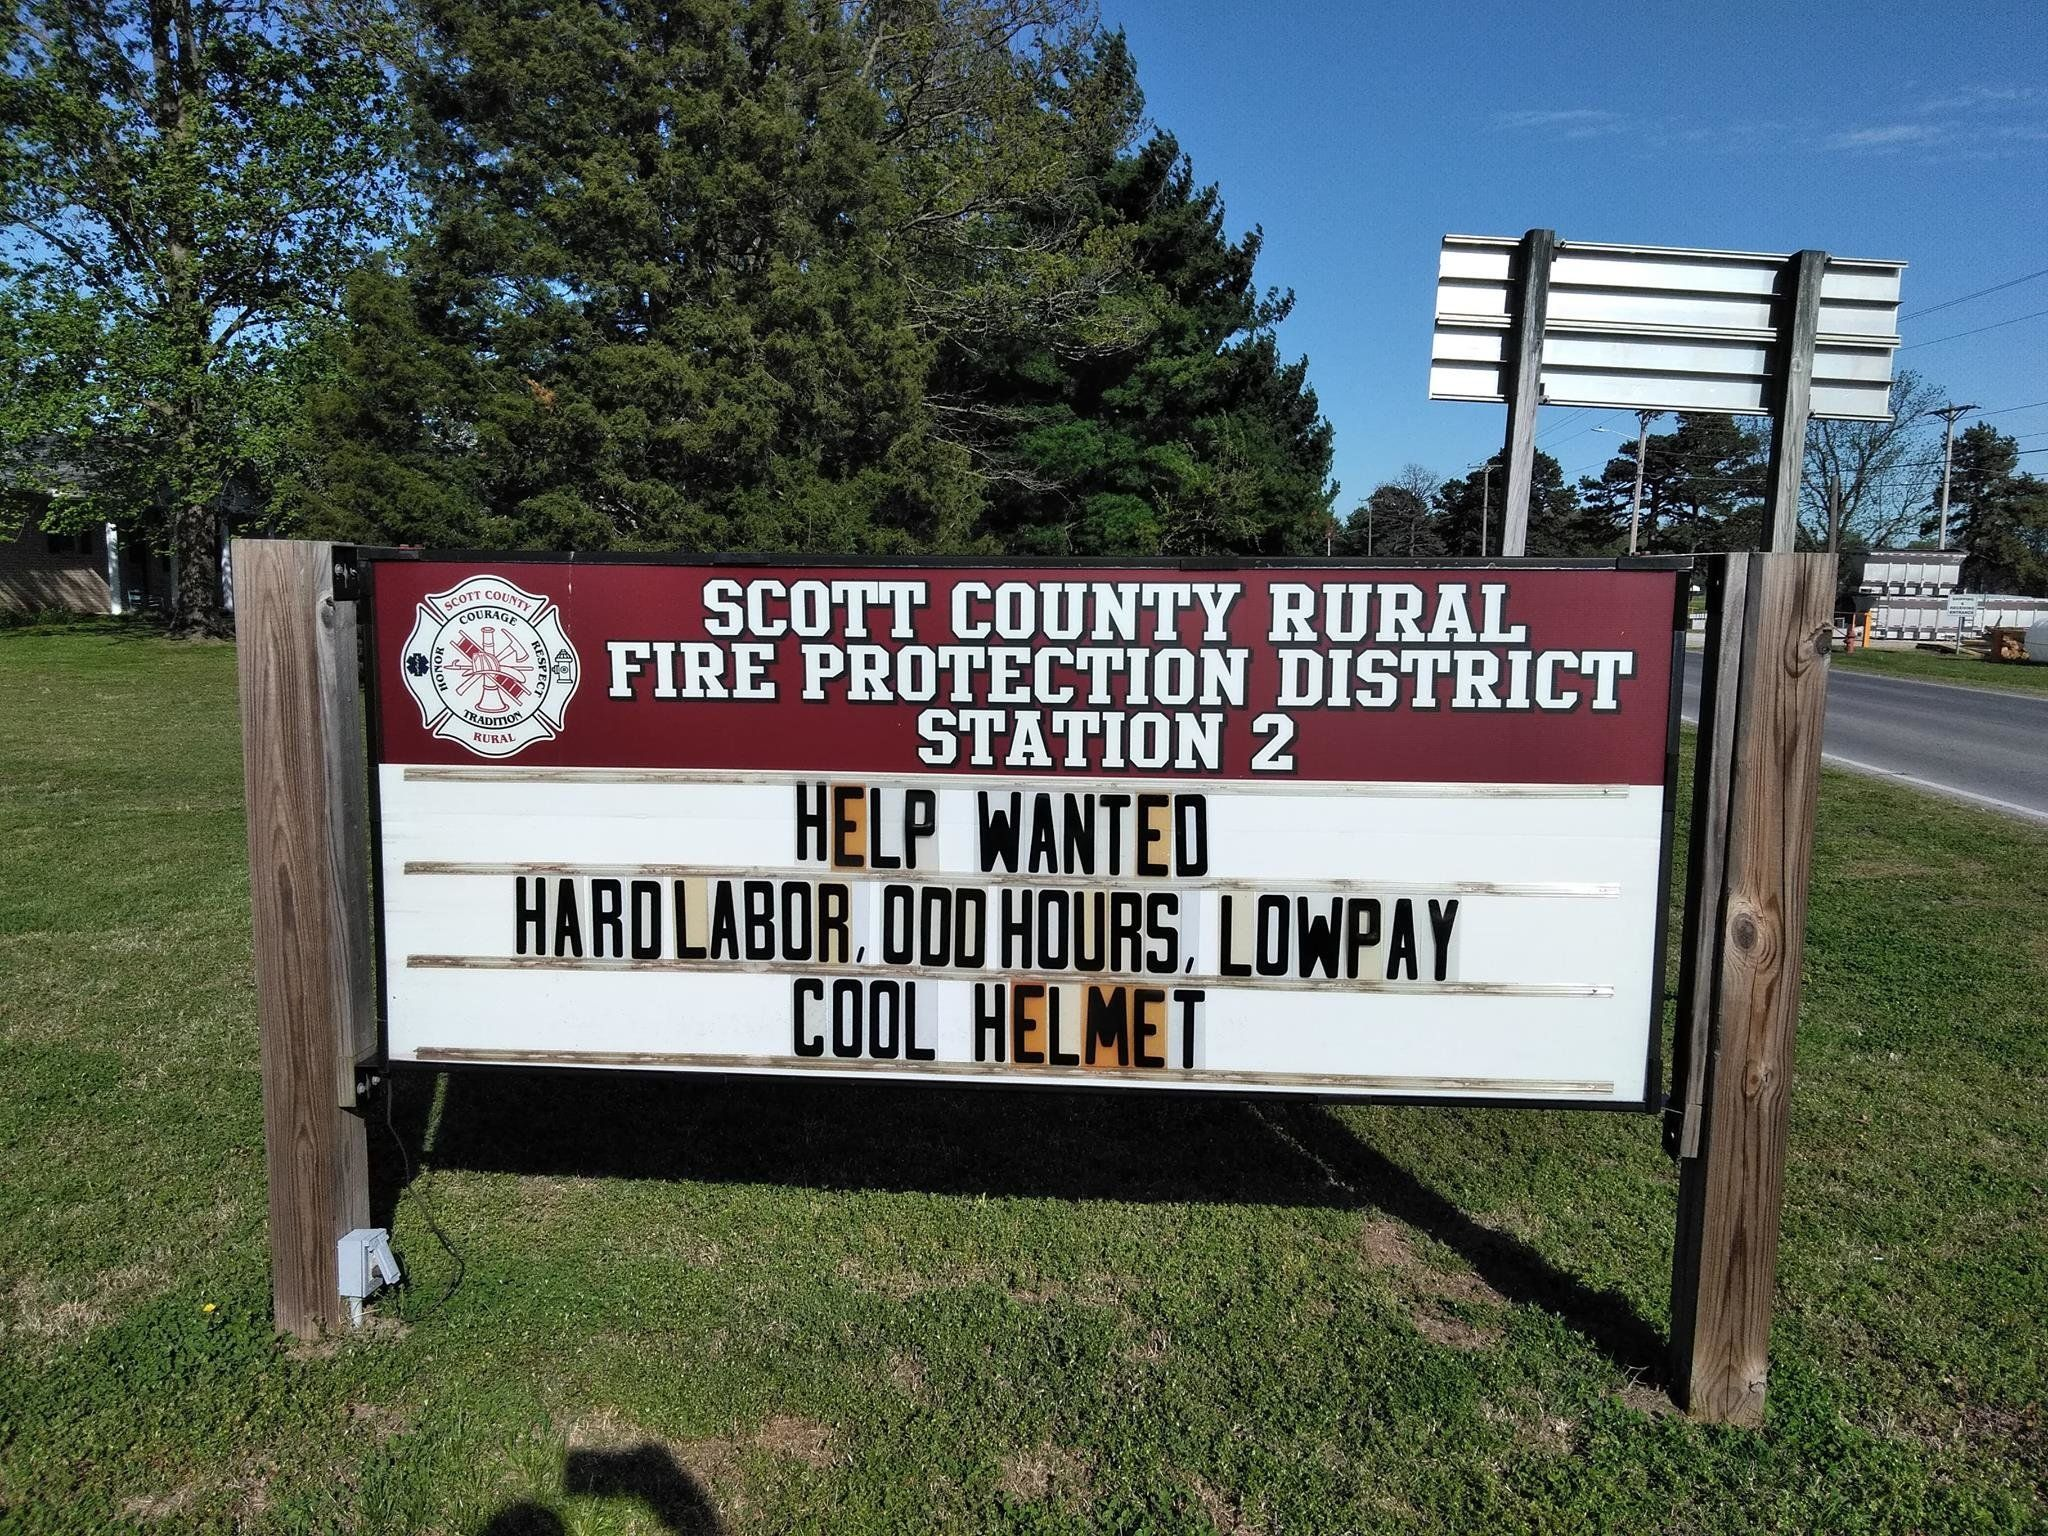 Scott County Rural Fire Protection District